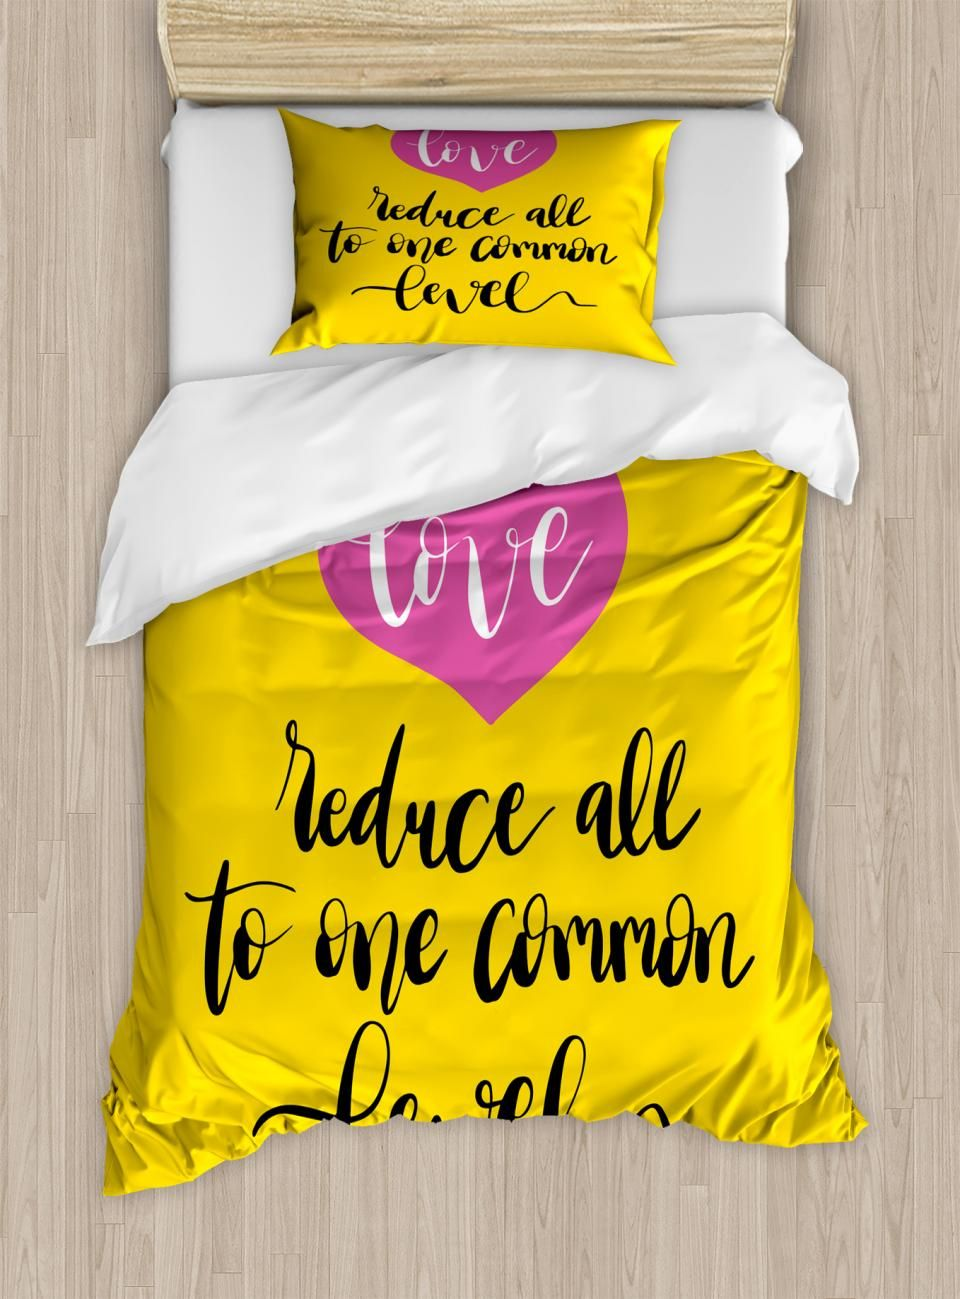 Inspirational Duvet Cover Set Twin Queen King Sizes With Pillow Shams Bedding Duvet Cover Sets Duvet Covers Pillow Shams